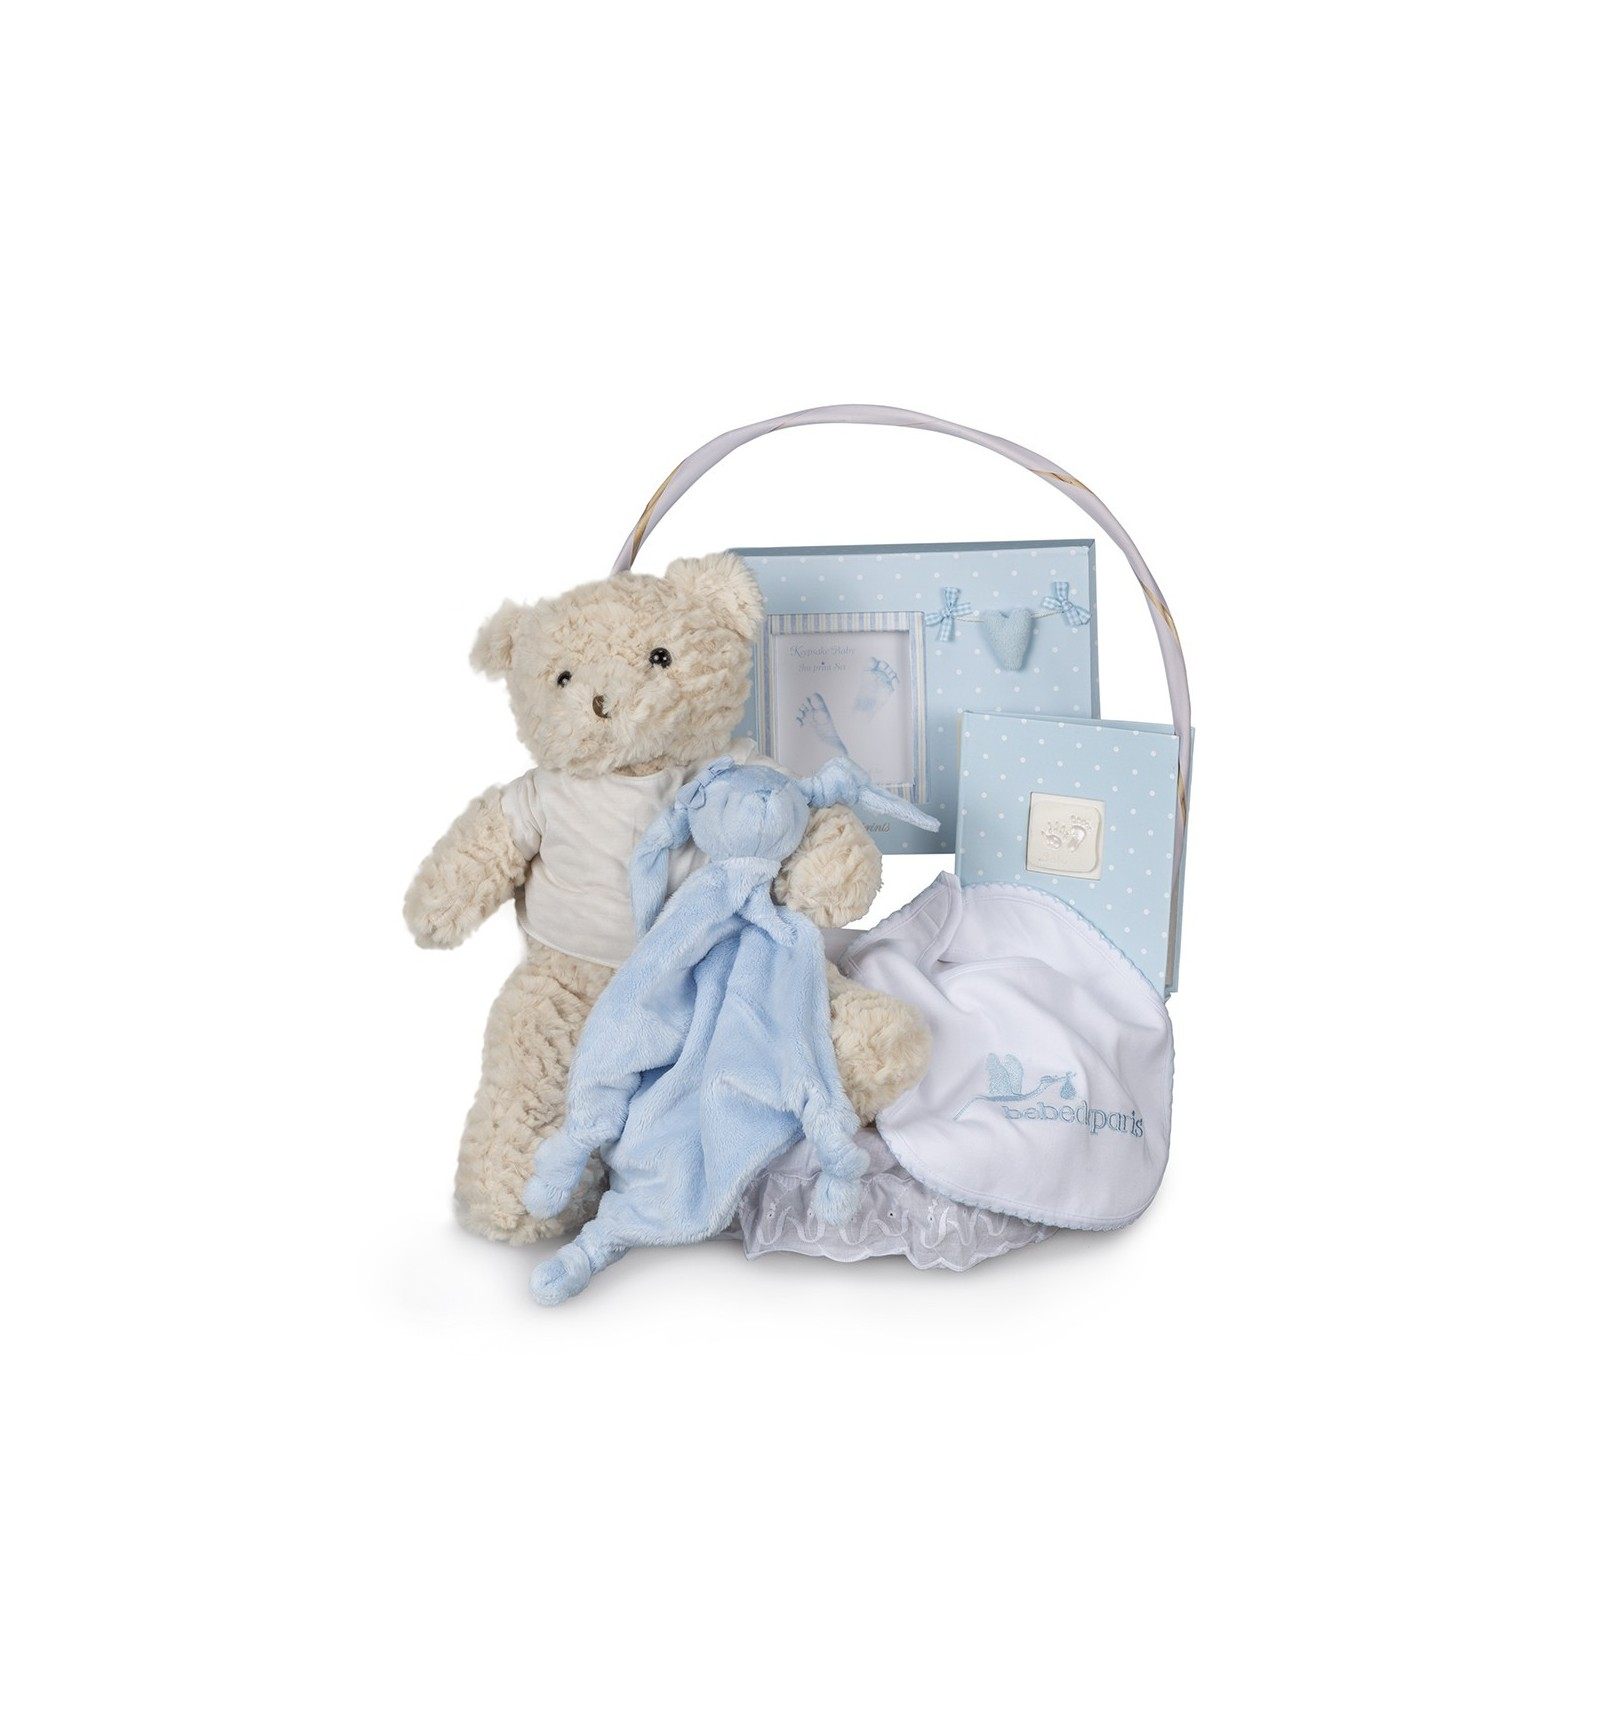 Baby Gift Baskets Delivered Uk : Memories essential baby gift hamper